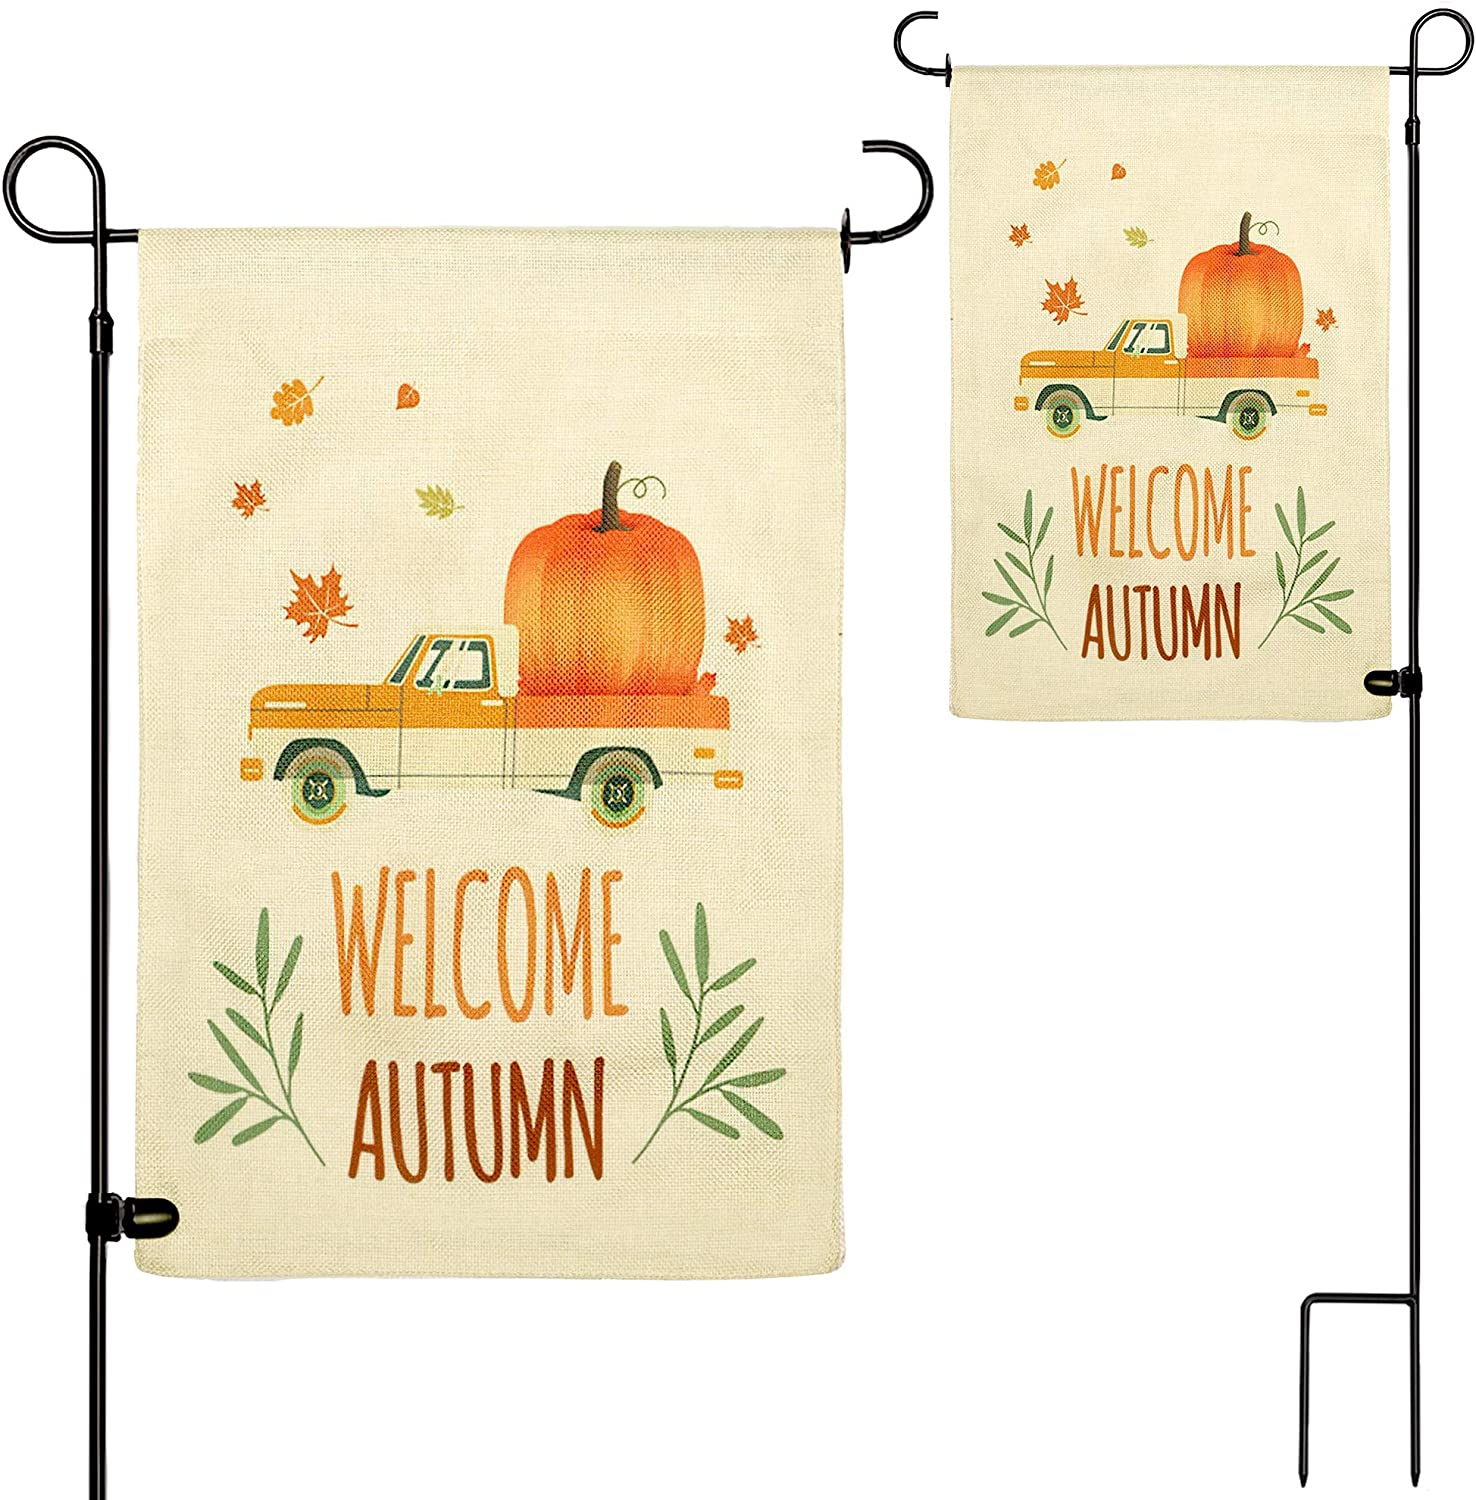 yosager Thanksgiving Fall Garden Flag with Flag Stand, Double Sided Welcome Autumn Flags, Outdoor House Farmhouse Yard Flags for Autumn Harvest Thanksgiving Decorations 12 x 18 Inch